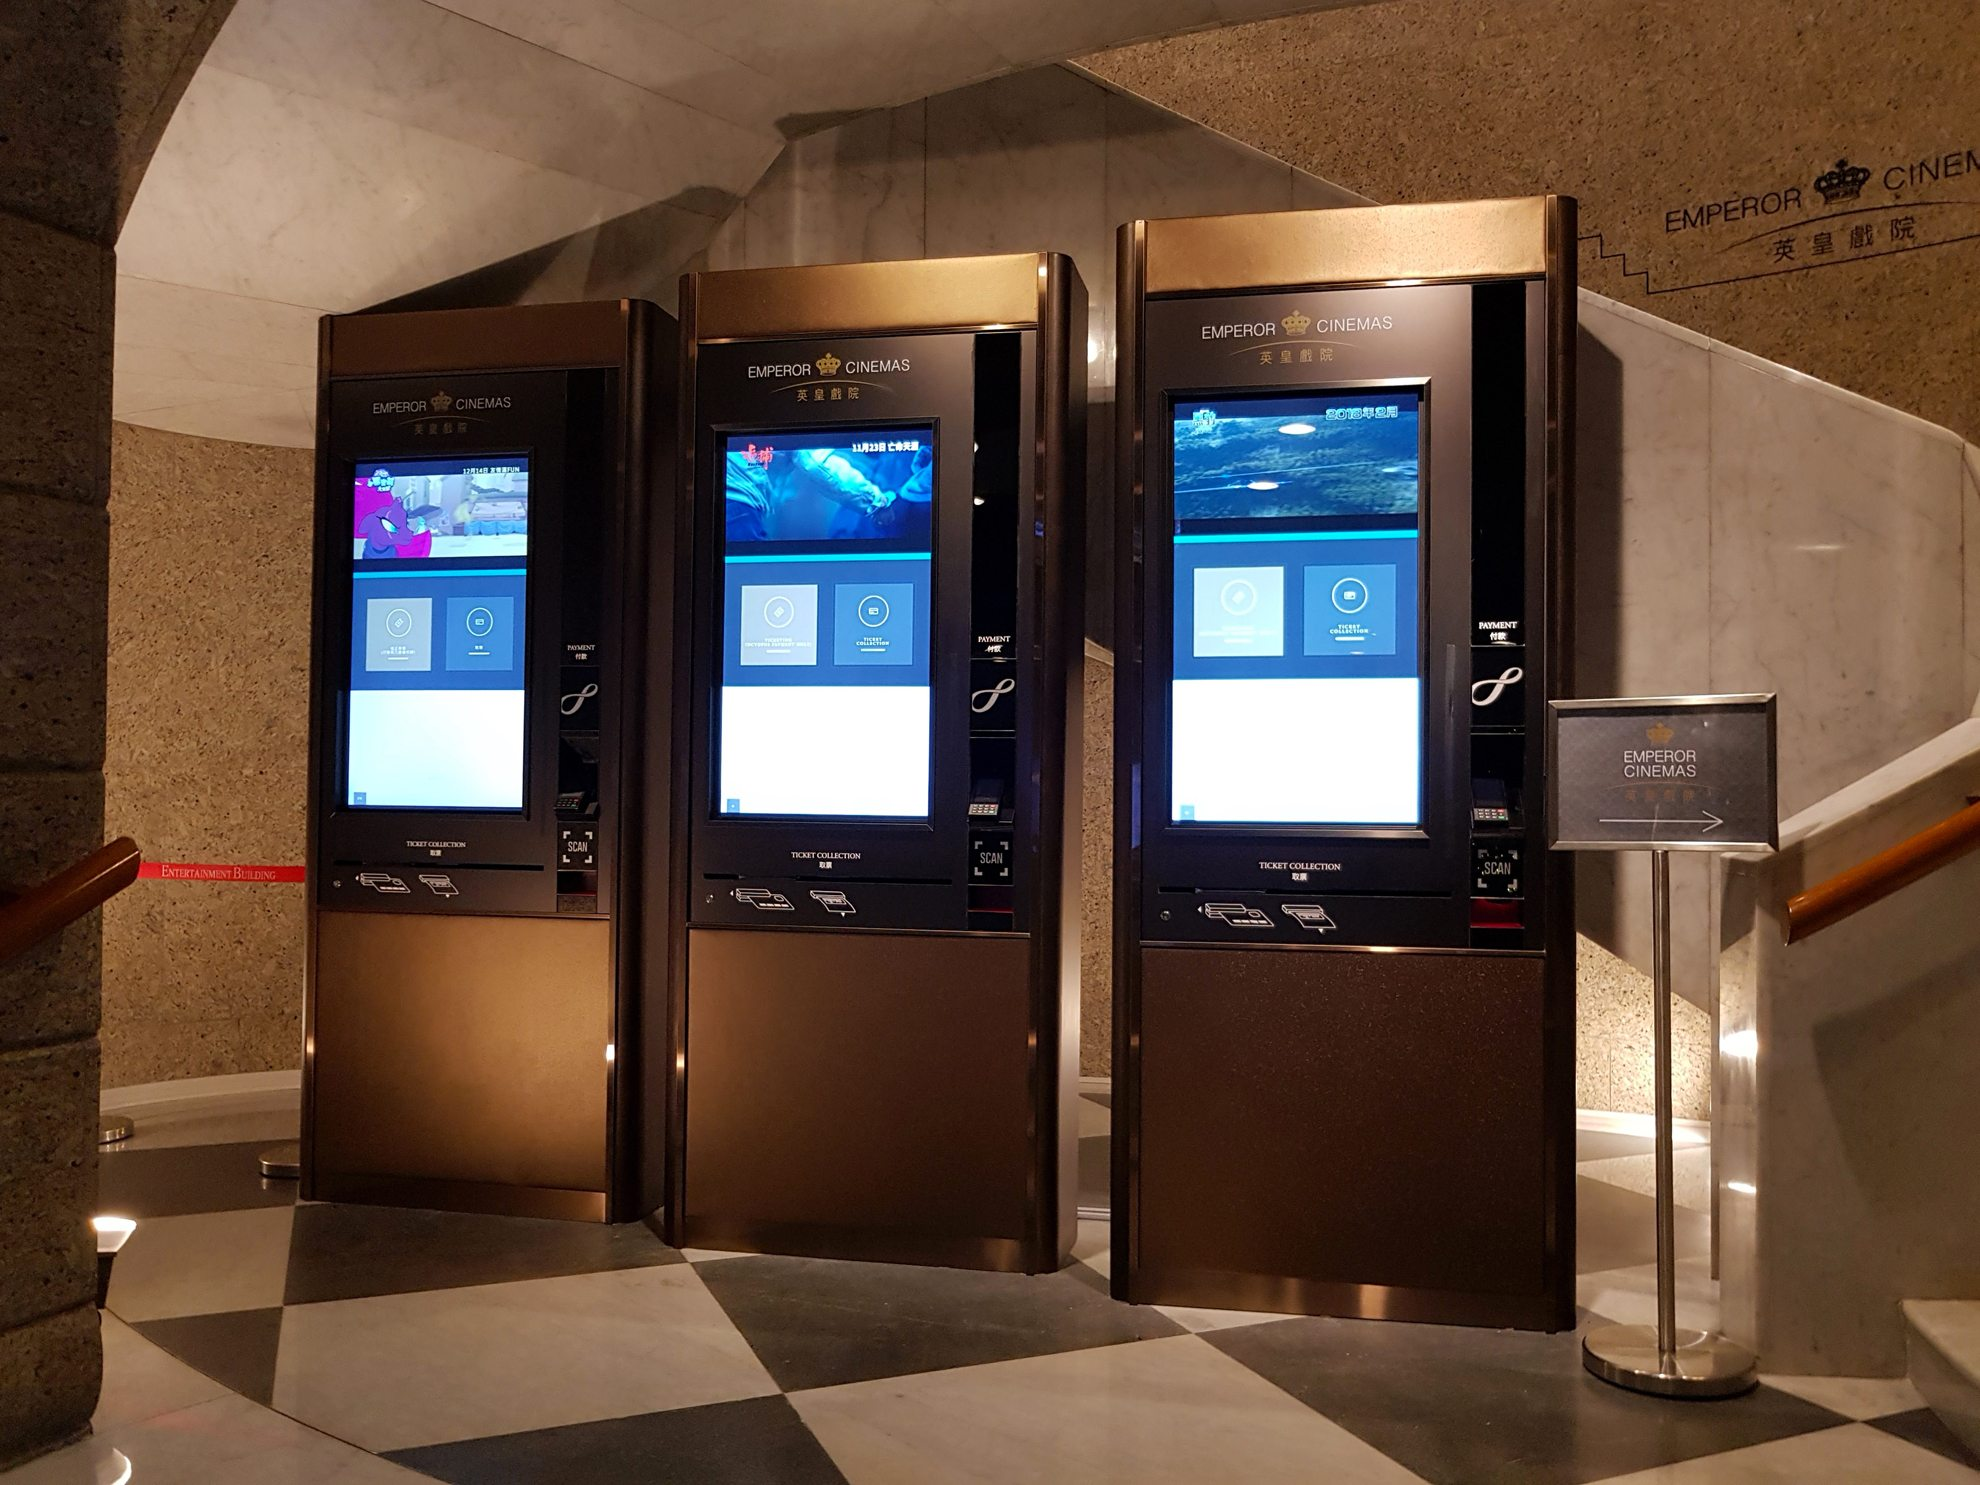 Kiosks at the Emperor Cinemas in Hong Kong